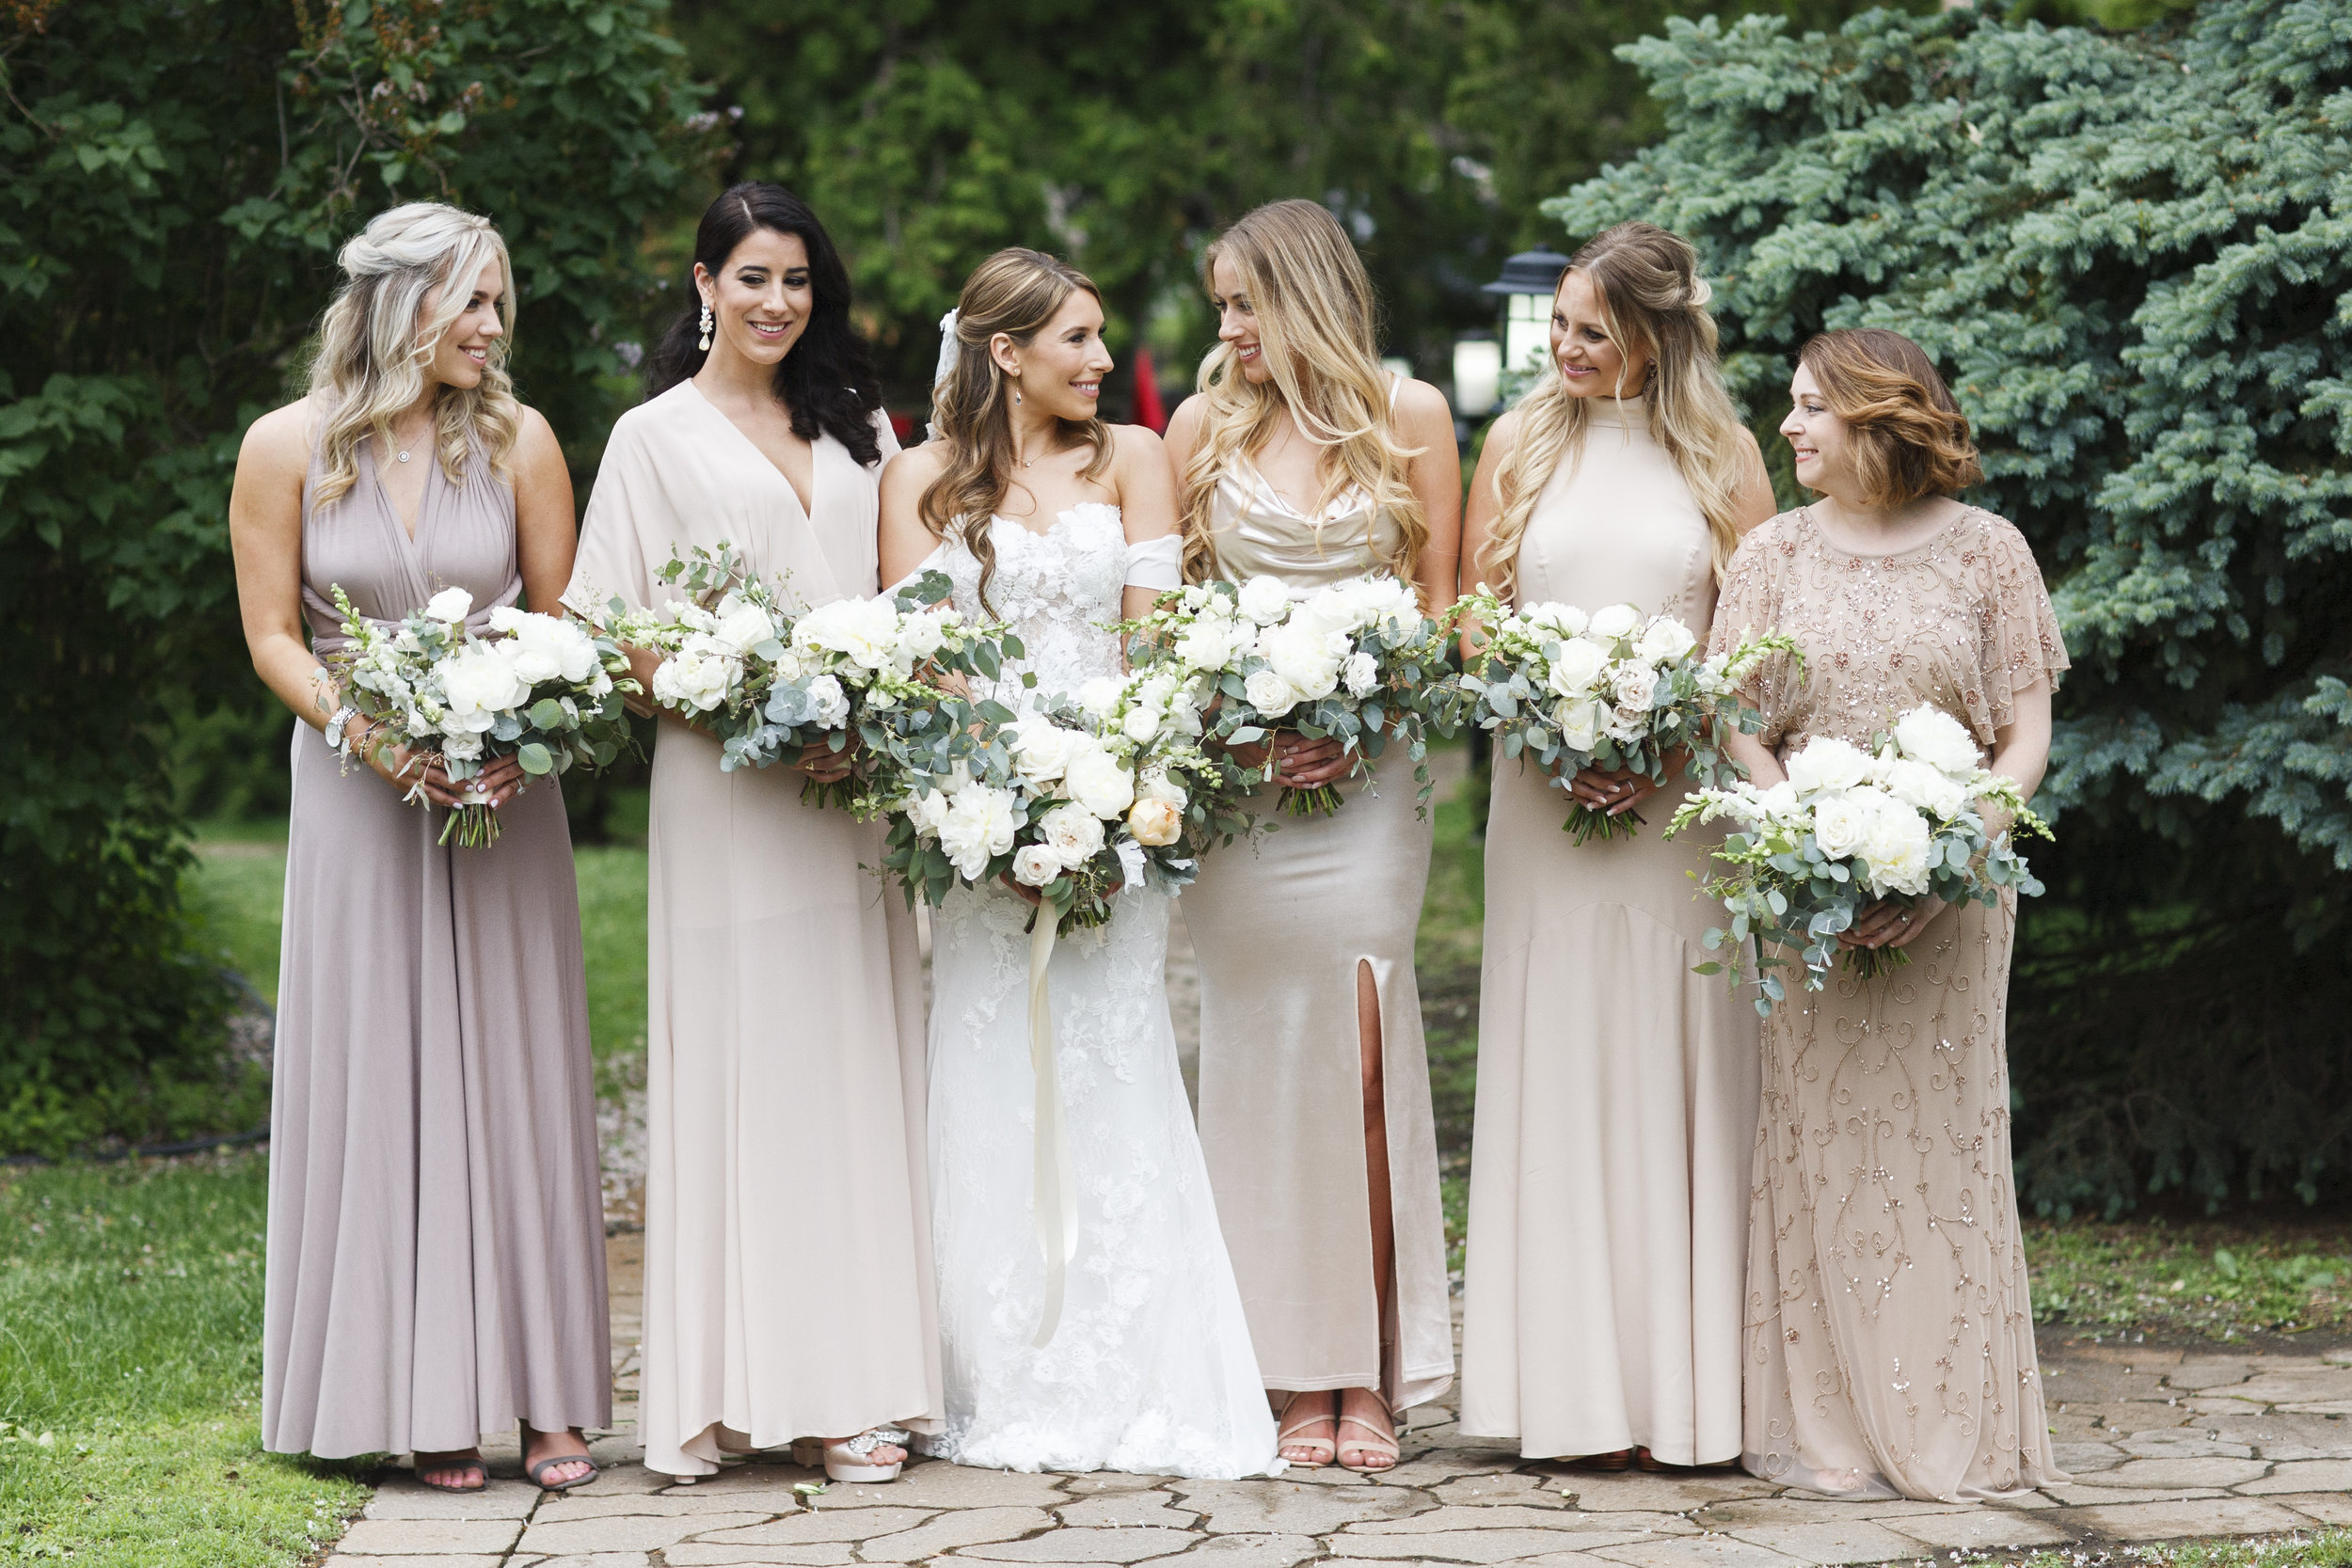 Aley + Scott | Snapdragons & Anike Garden Roses in a Bouquet